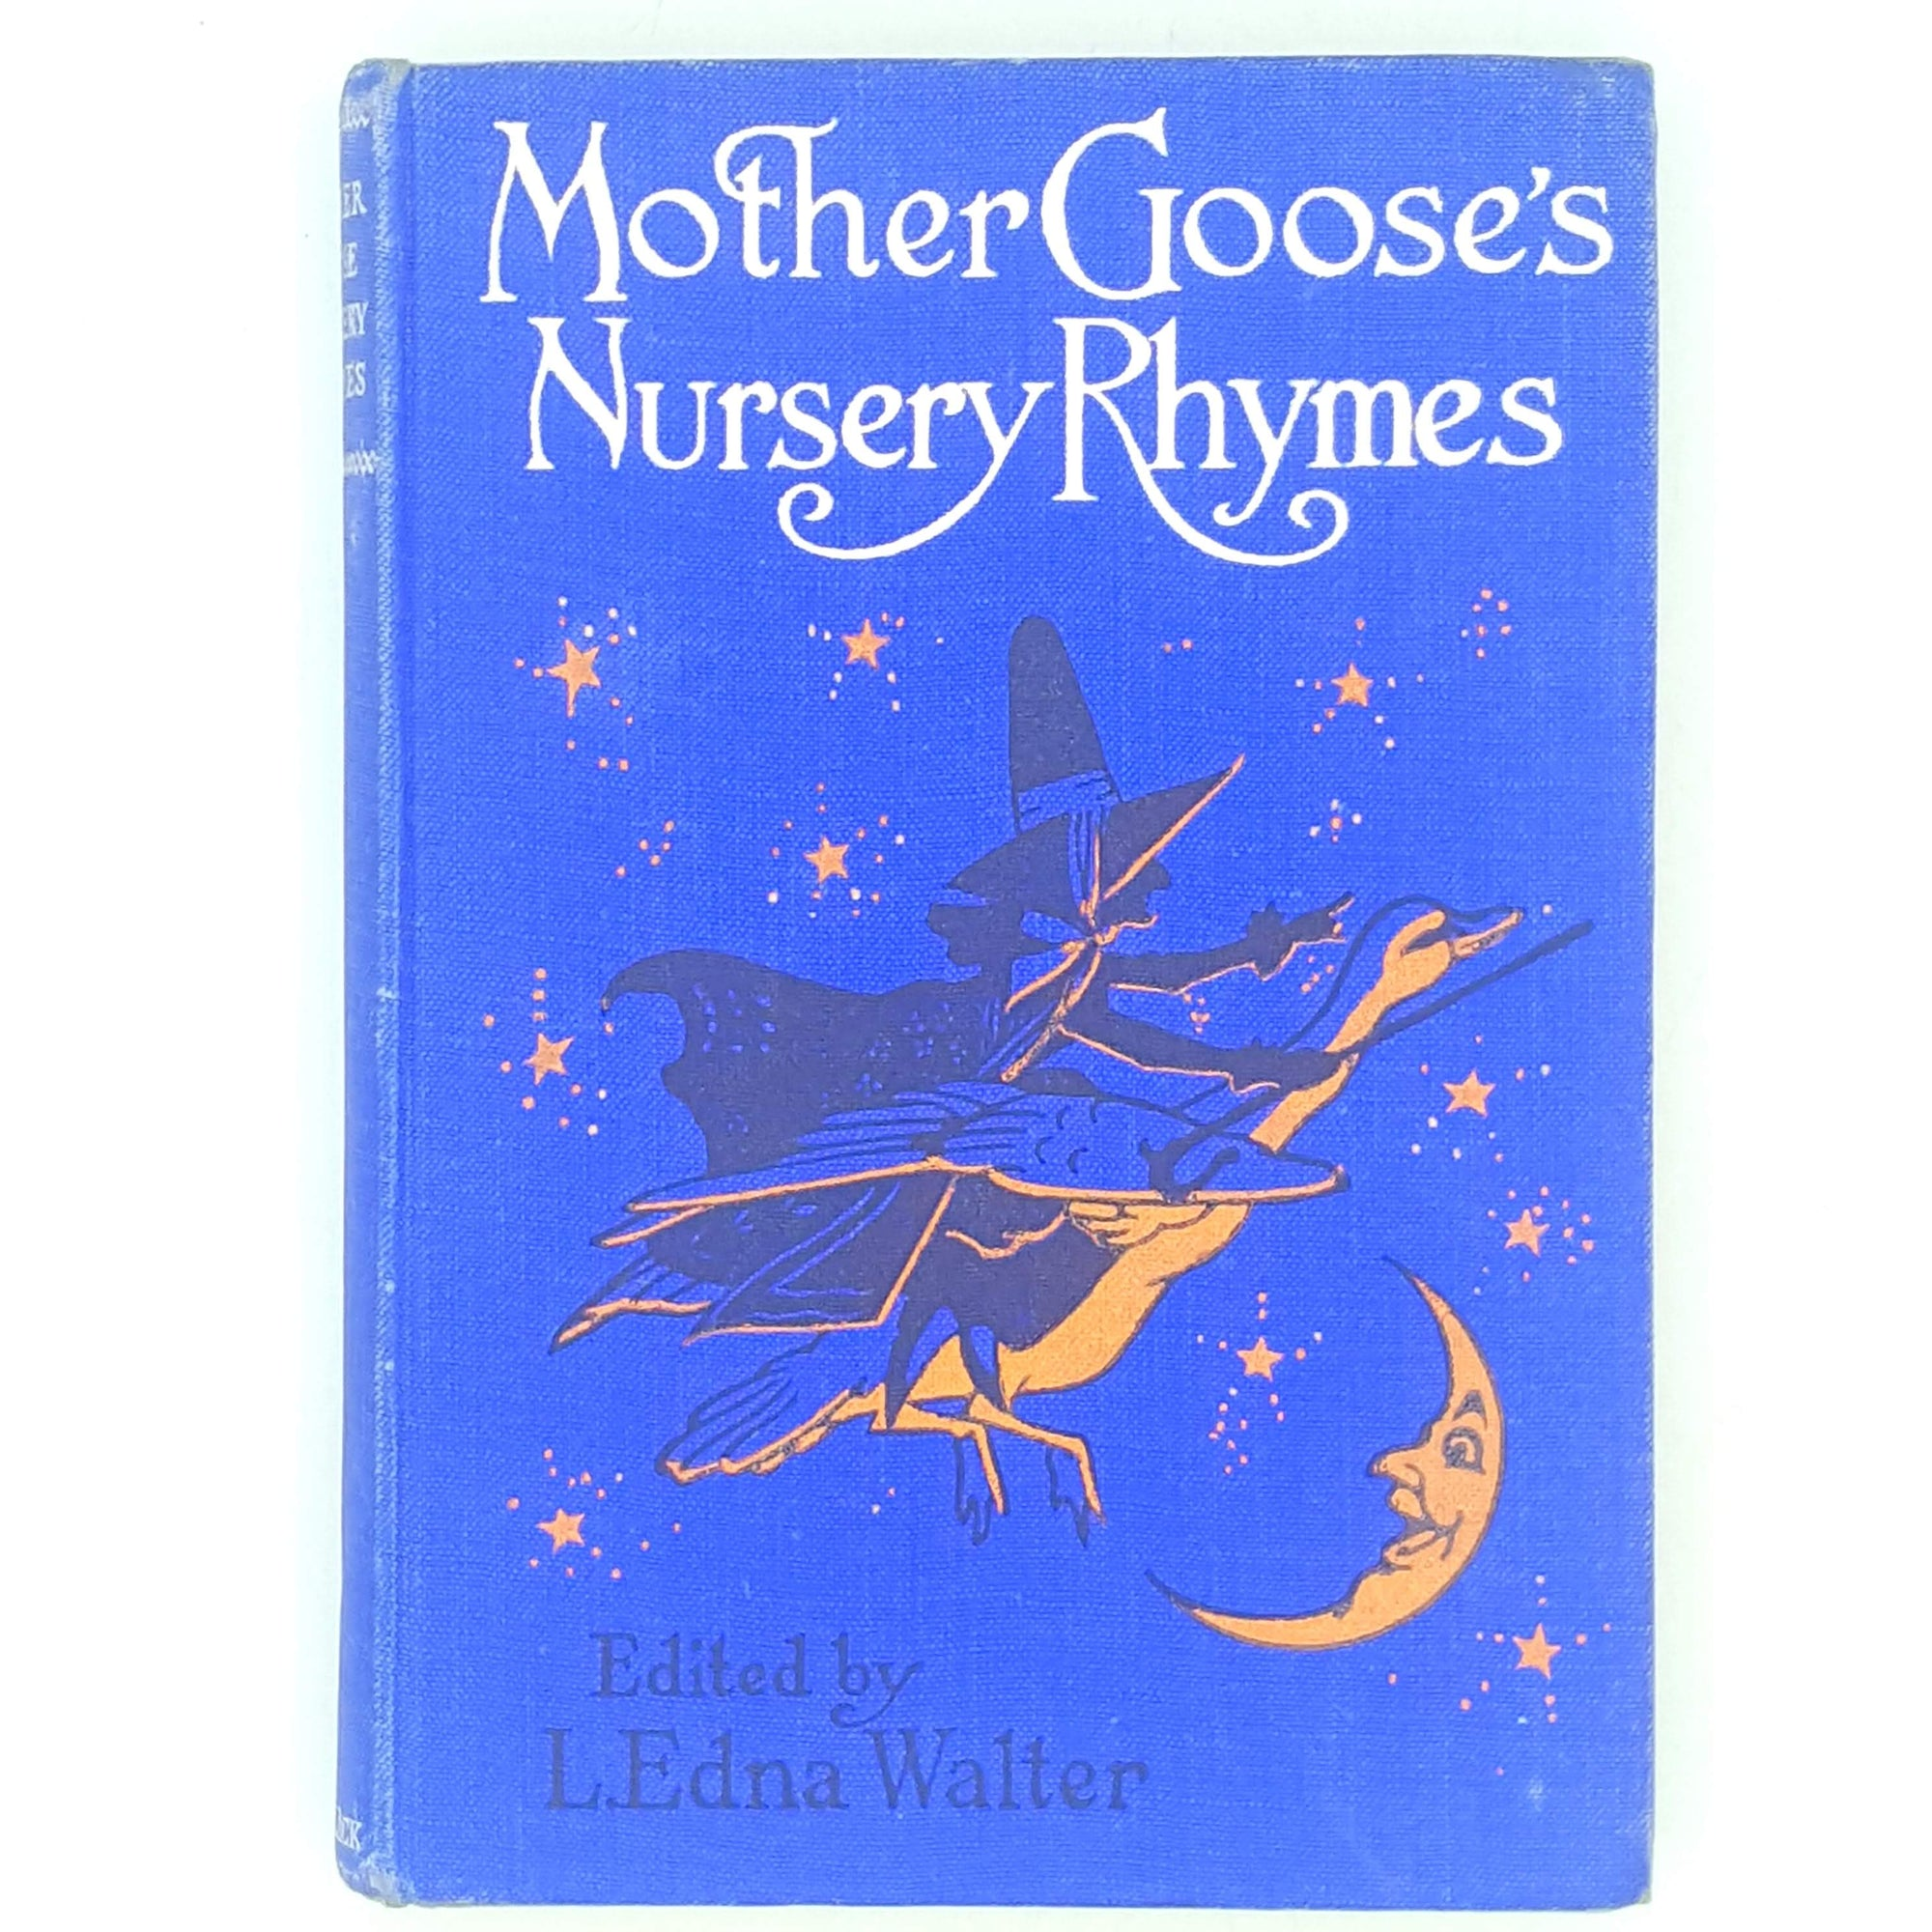 Mother Goose's Nursery Rhymes Edited by L. Edna Walter 1946